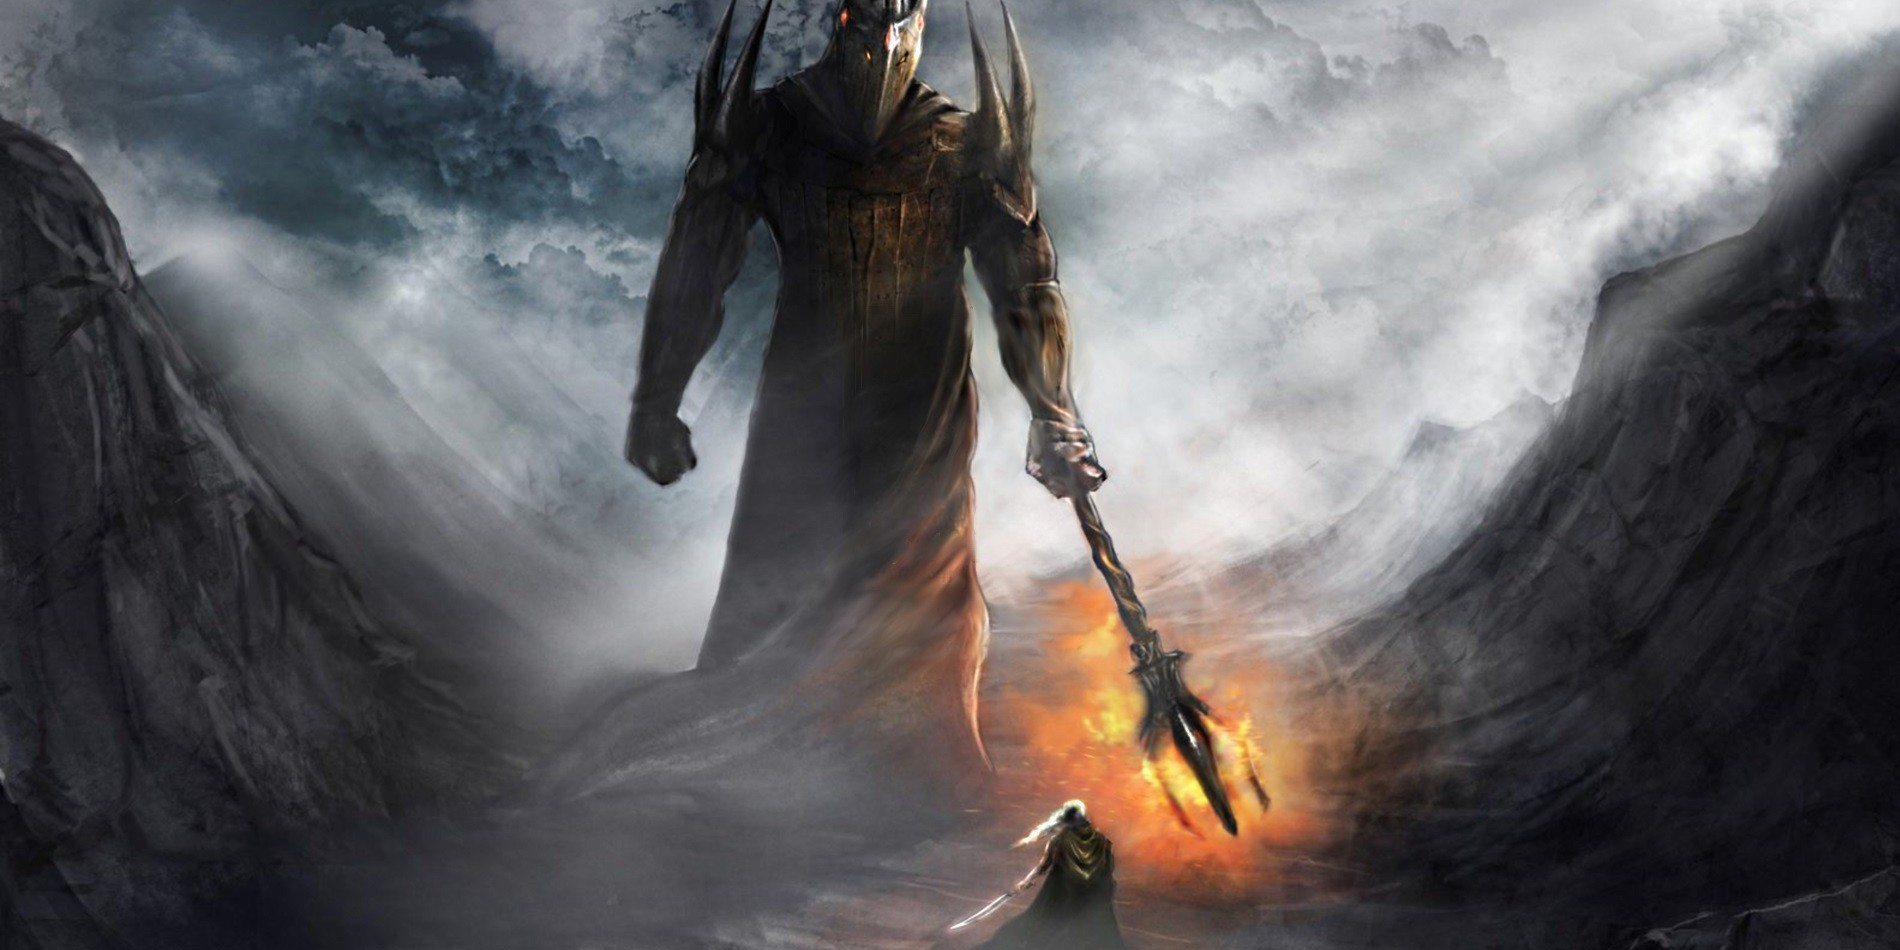 Sauron Mairon and Morgoth Melkon in Tolkien Lord of the Rings